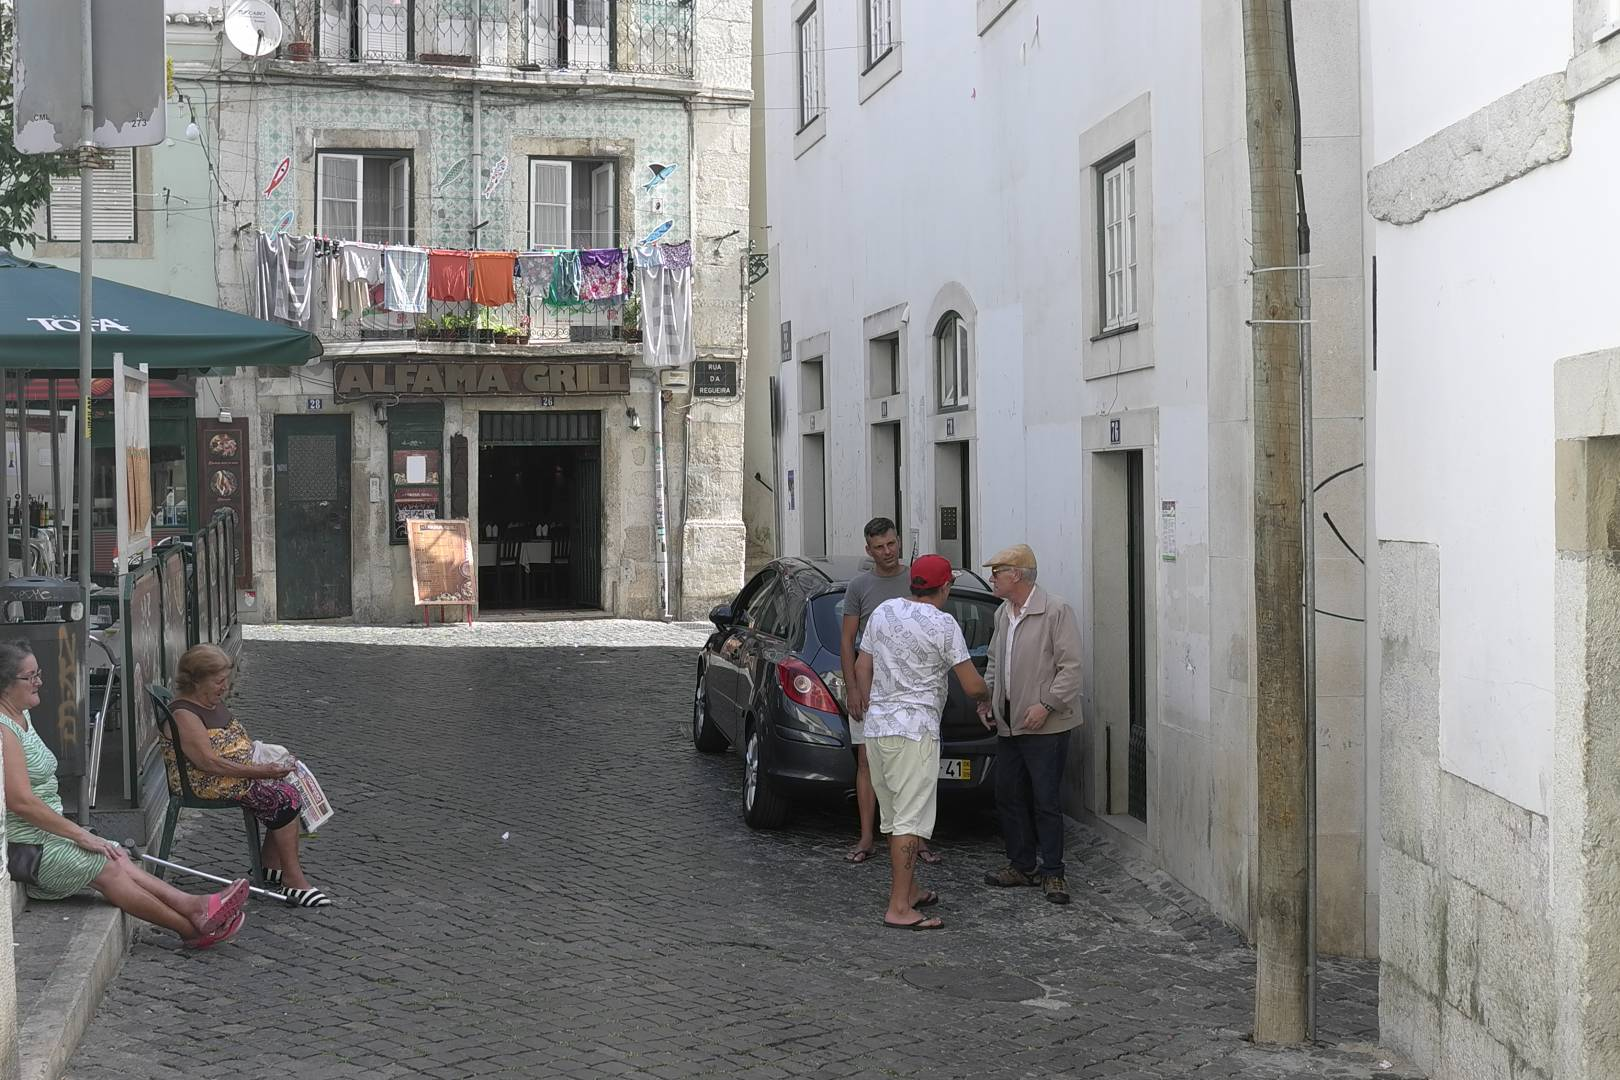 Alfama, old quarter Lisbon in 2016. I suspect this scene has now disappeared.